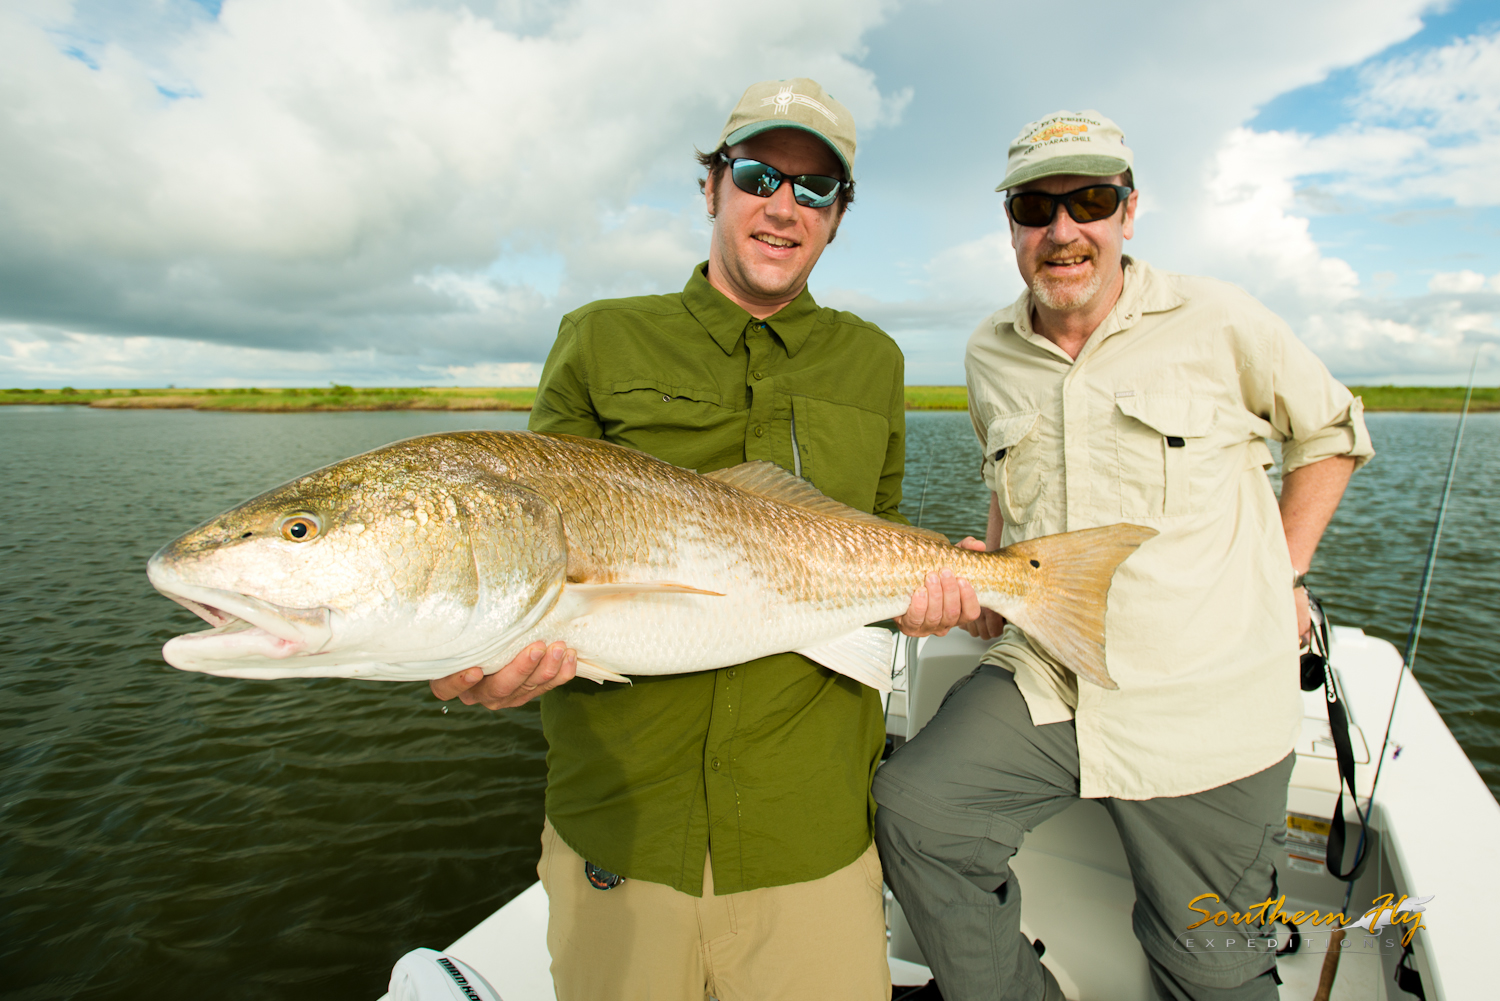 Best redfish guide in Louisiana - Southern Fly Expeditions fishing for redfish